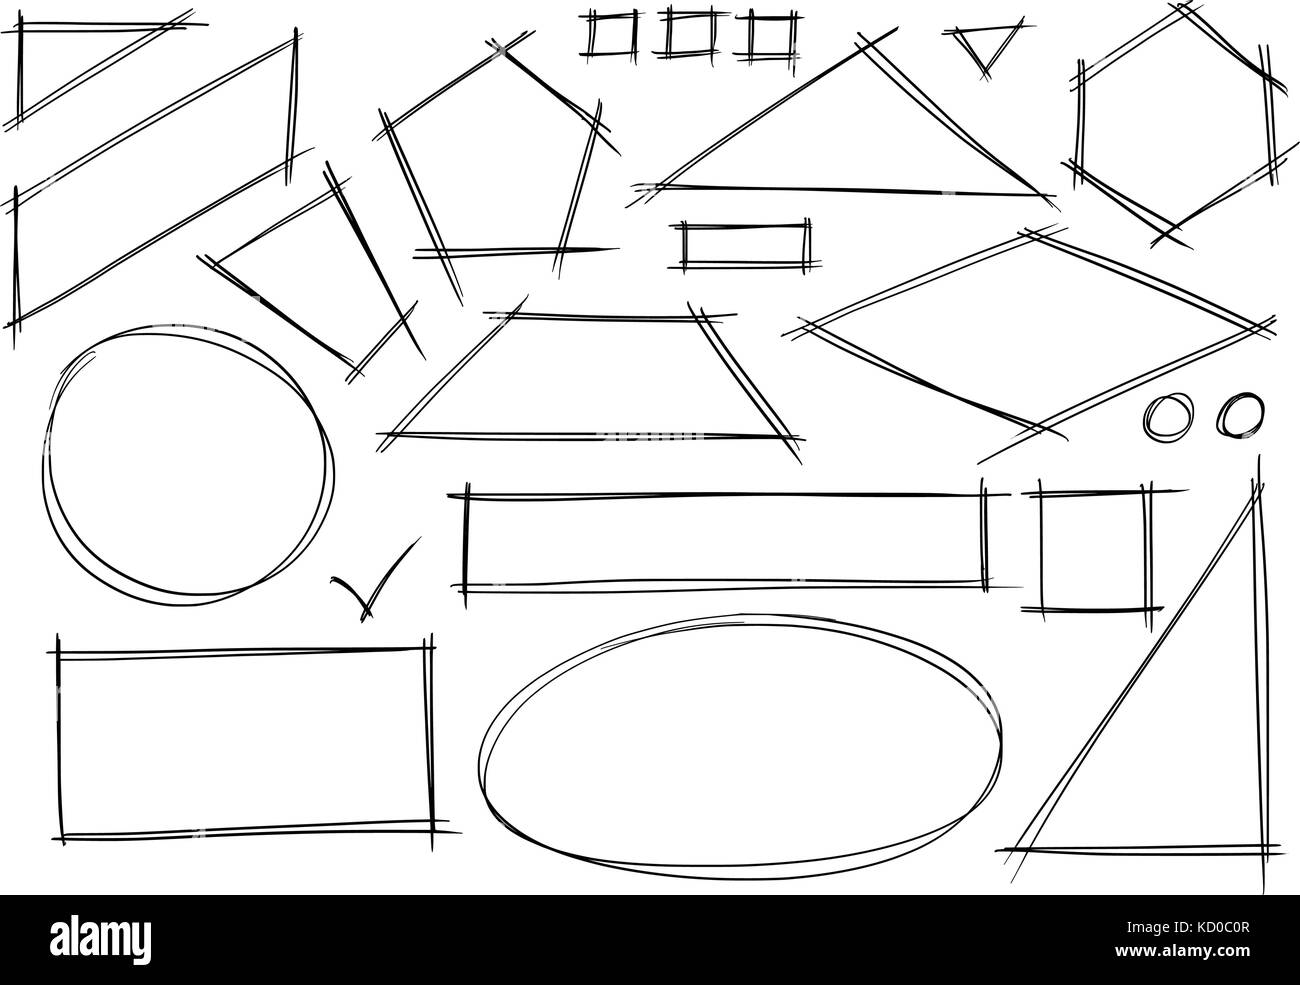 Set of various sketchy 2d geometrical shape doodles. - Stock Image